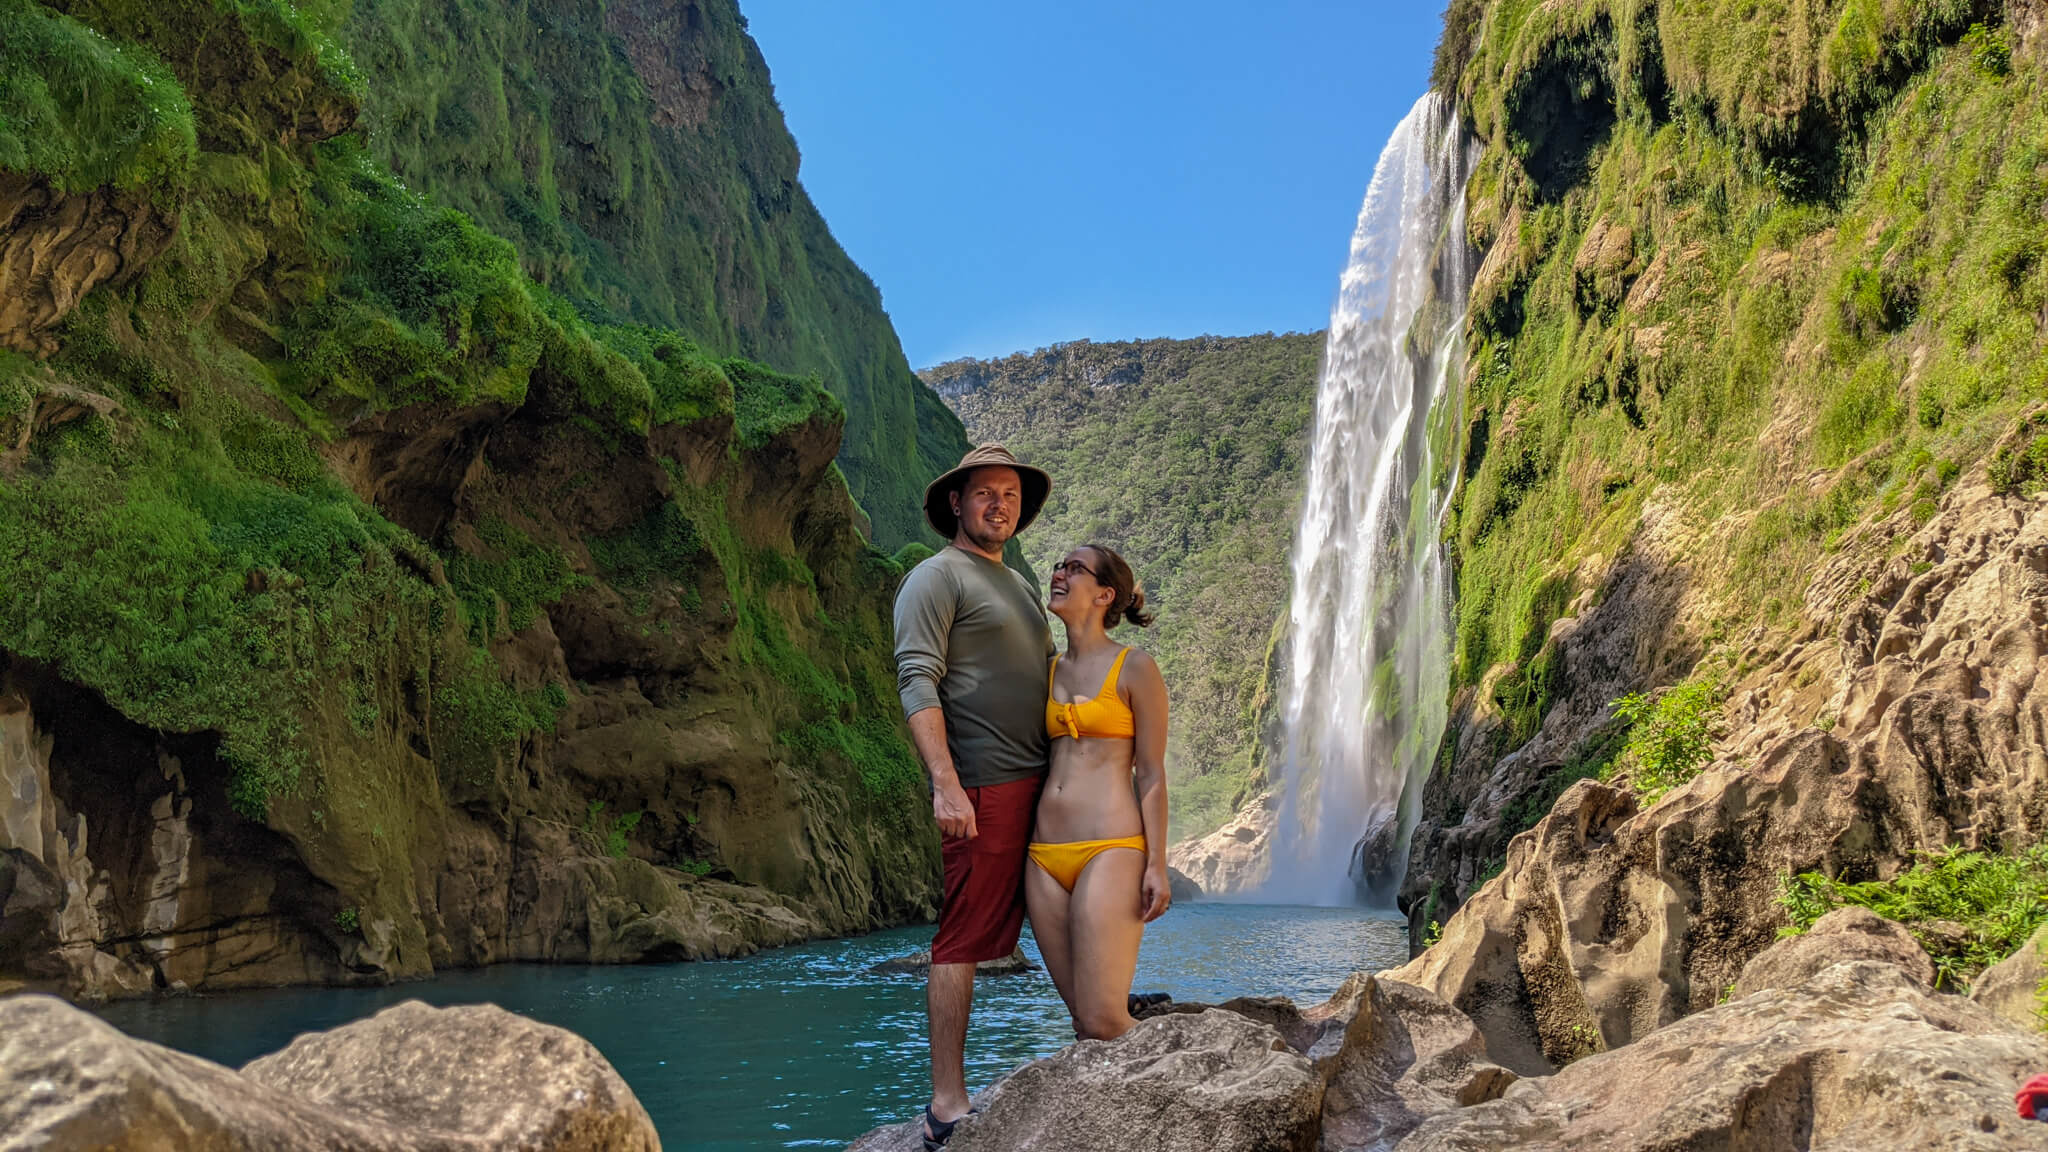 Couple smiling in front of Tamul waterfall and Tampaon river in Ciudad Valles, Huastecas, Mexico.